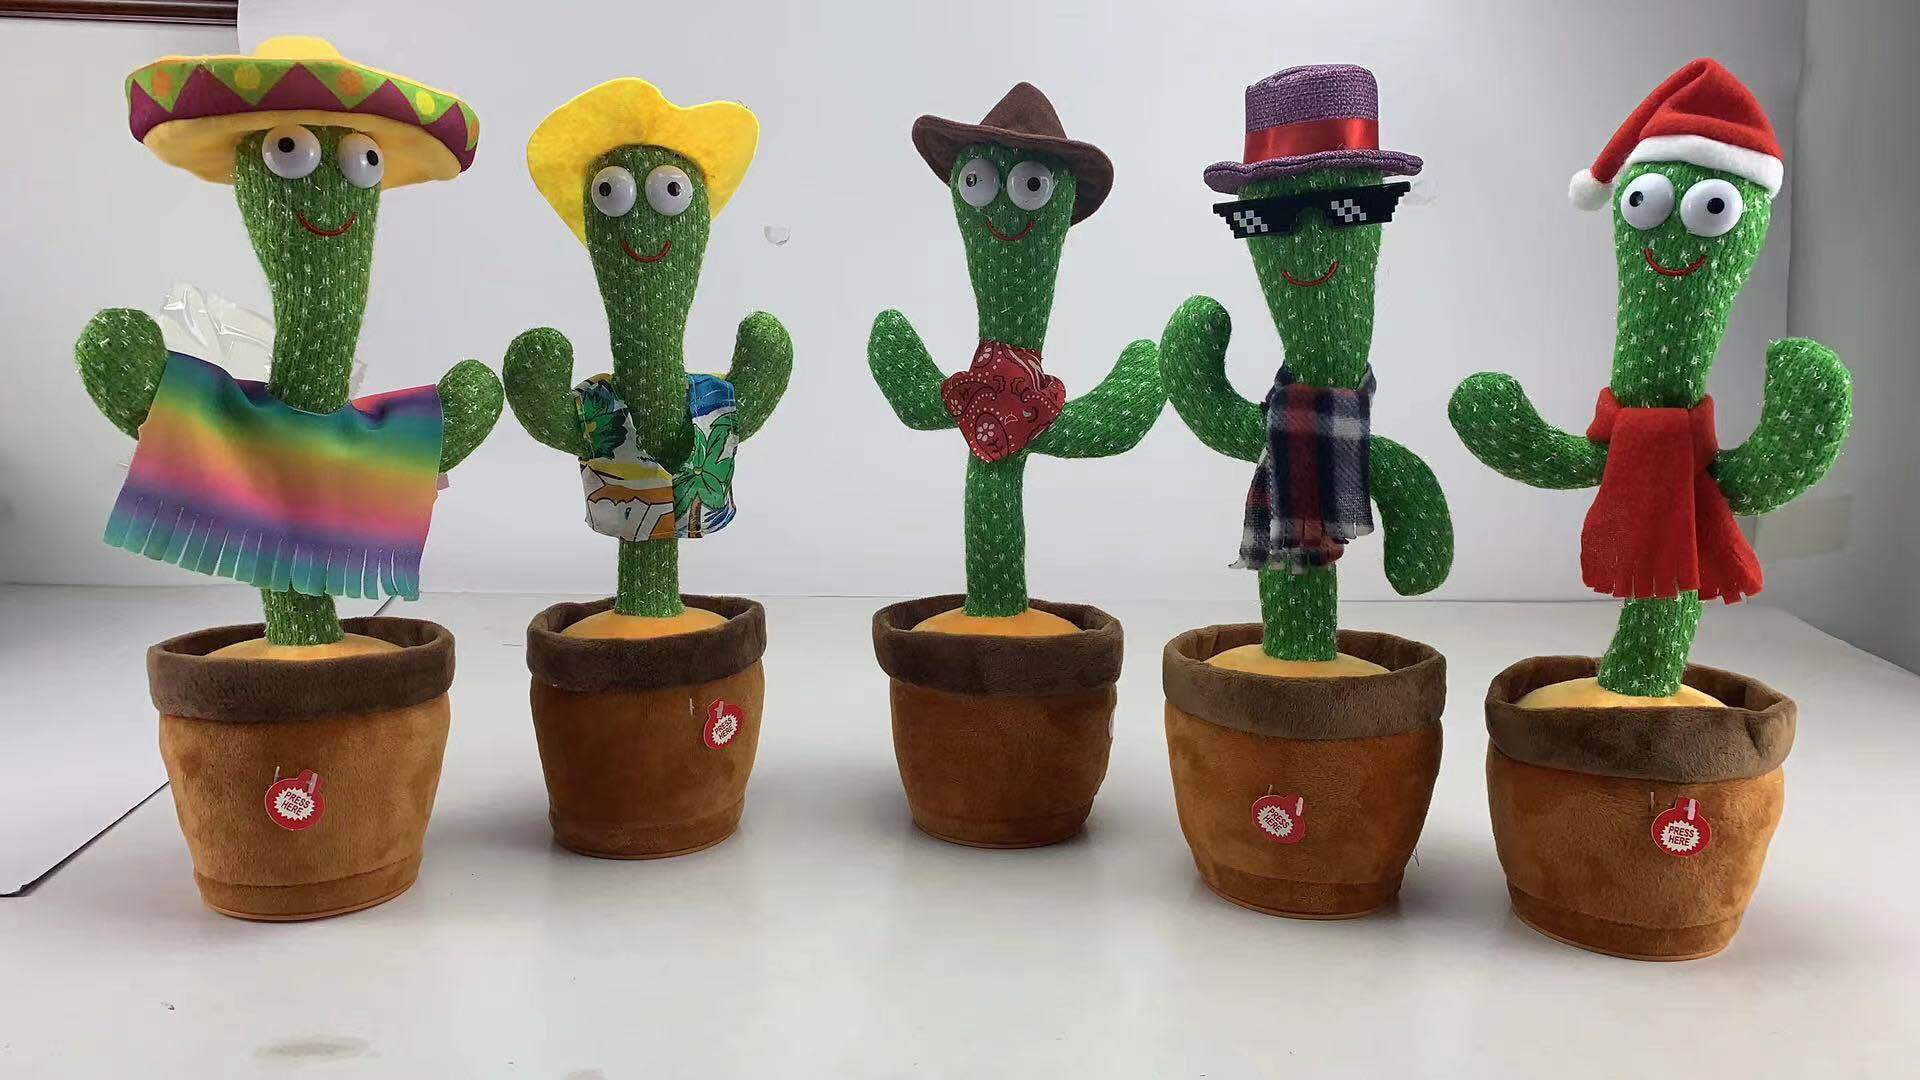 New Electronic Dancing Cactus Singing Dancing Decoration Gift for Kids Funny Early Education Toys Knitted Fabric Plush Toys